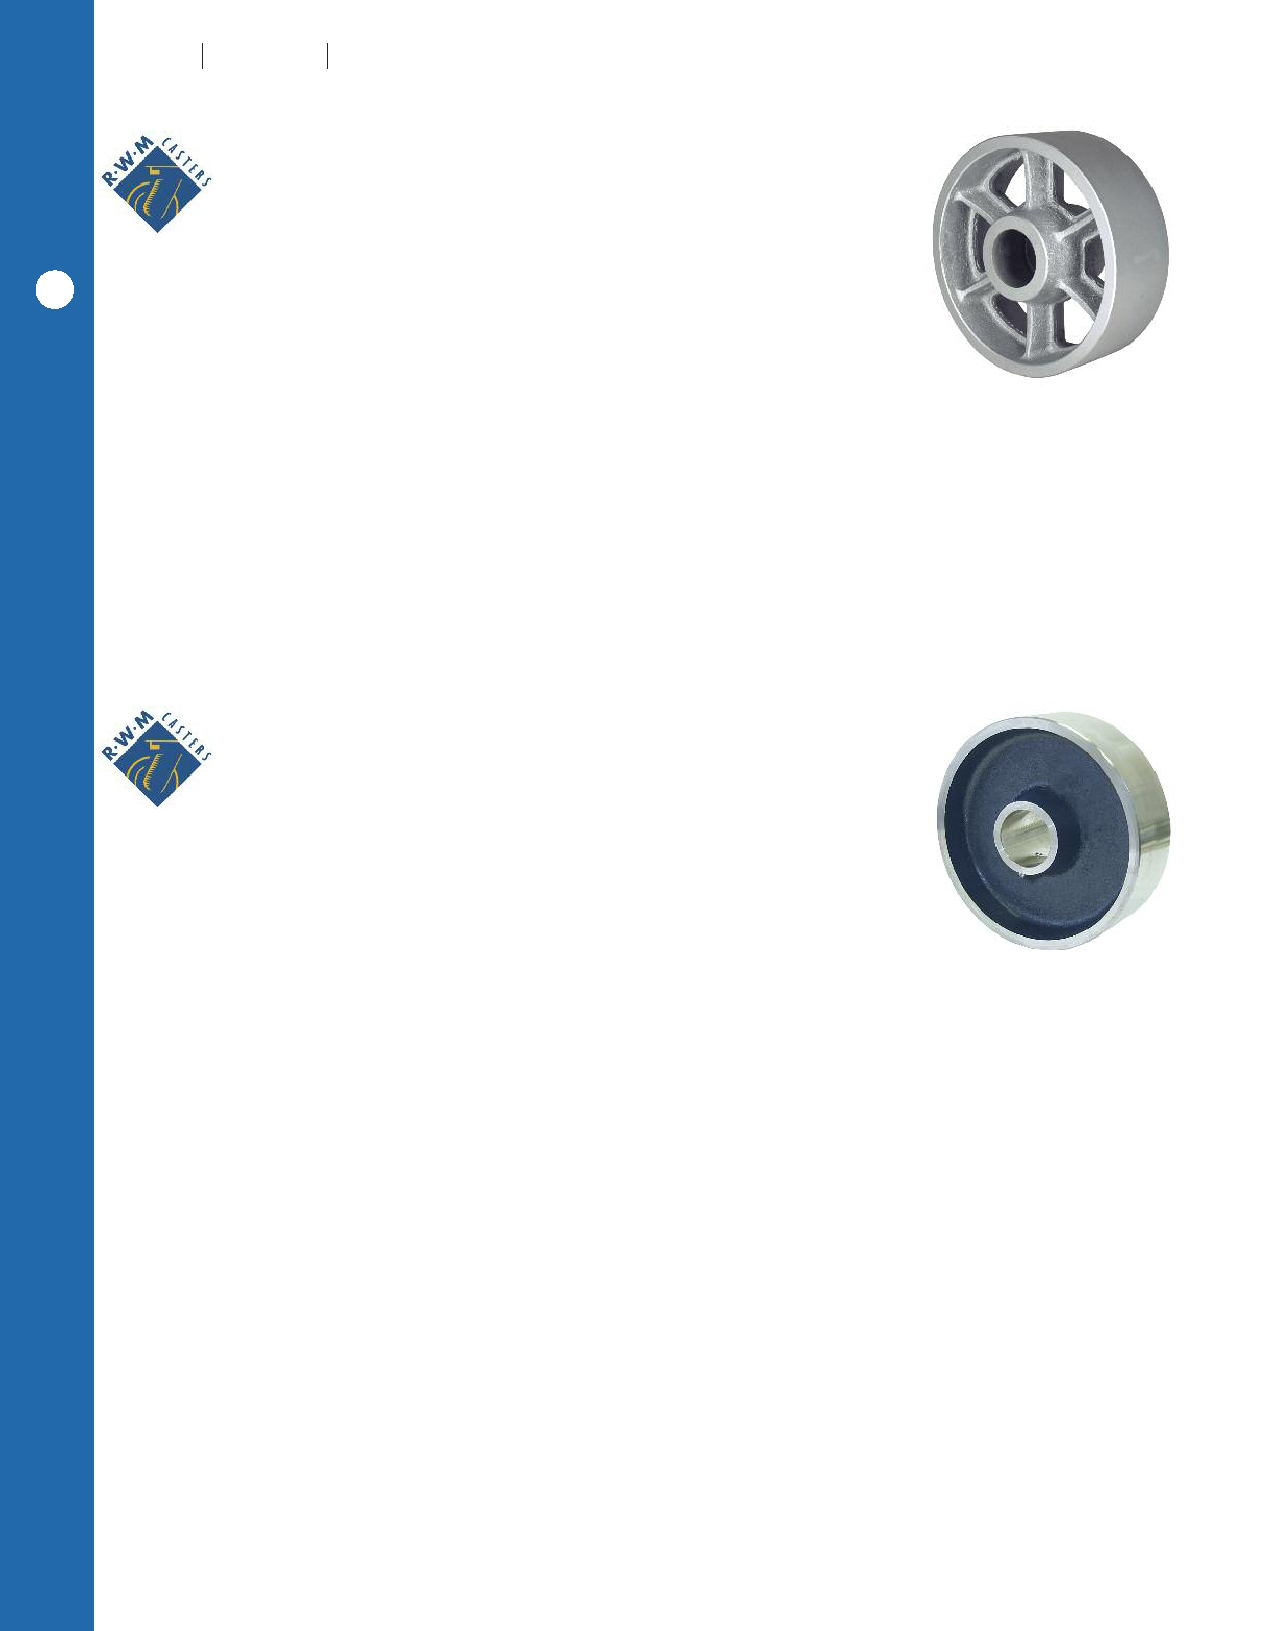 9-1//2 Mount Height Swivel 2 Wheel Width 800 lbs Capacity RWM Casters S45 Series Plate Caster Stainless Steel Plate 4-1//2 Plate Length 4 Plate Width Polyolefin Wheel 8 Wheel Dia Roller Bearing